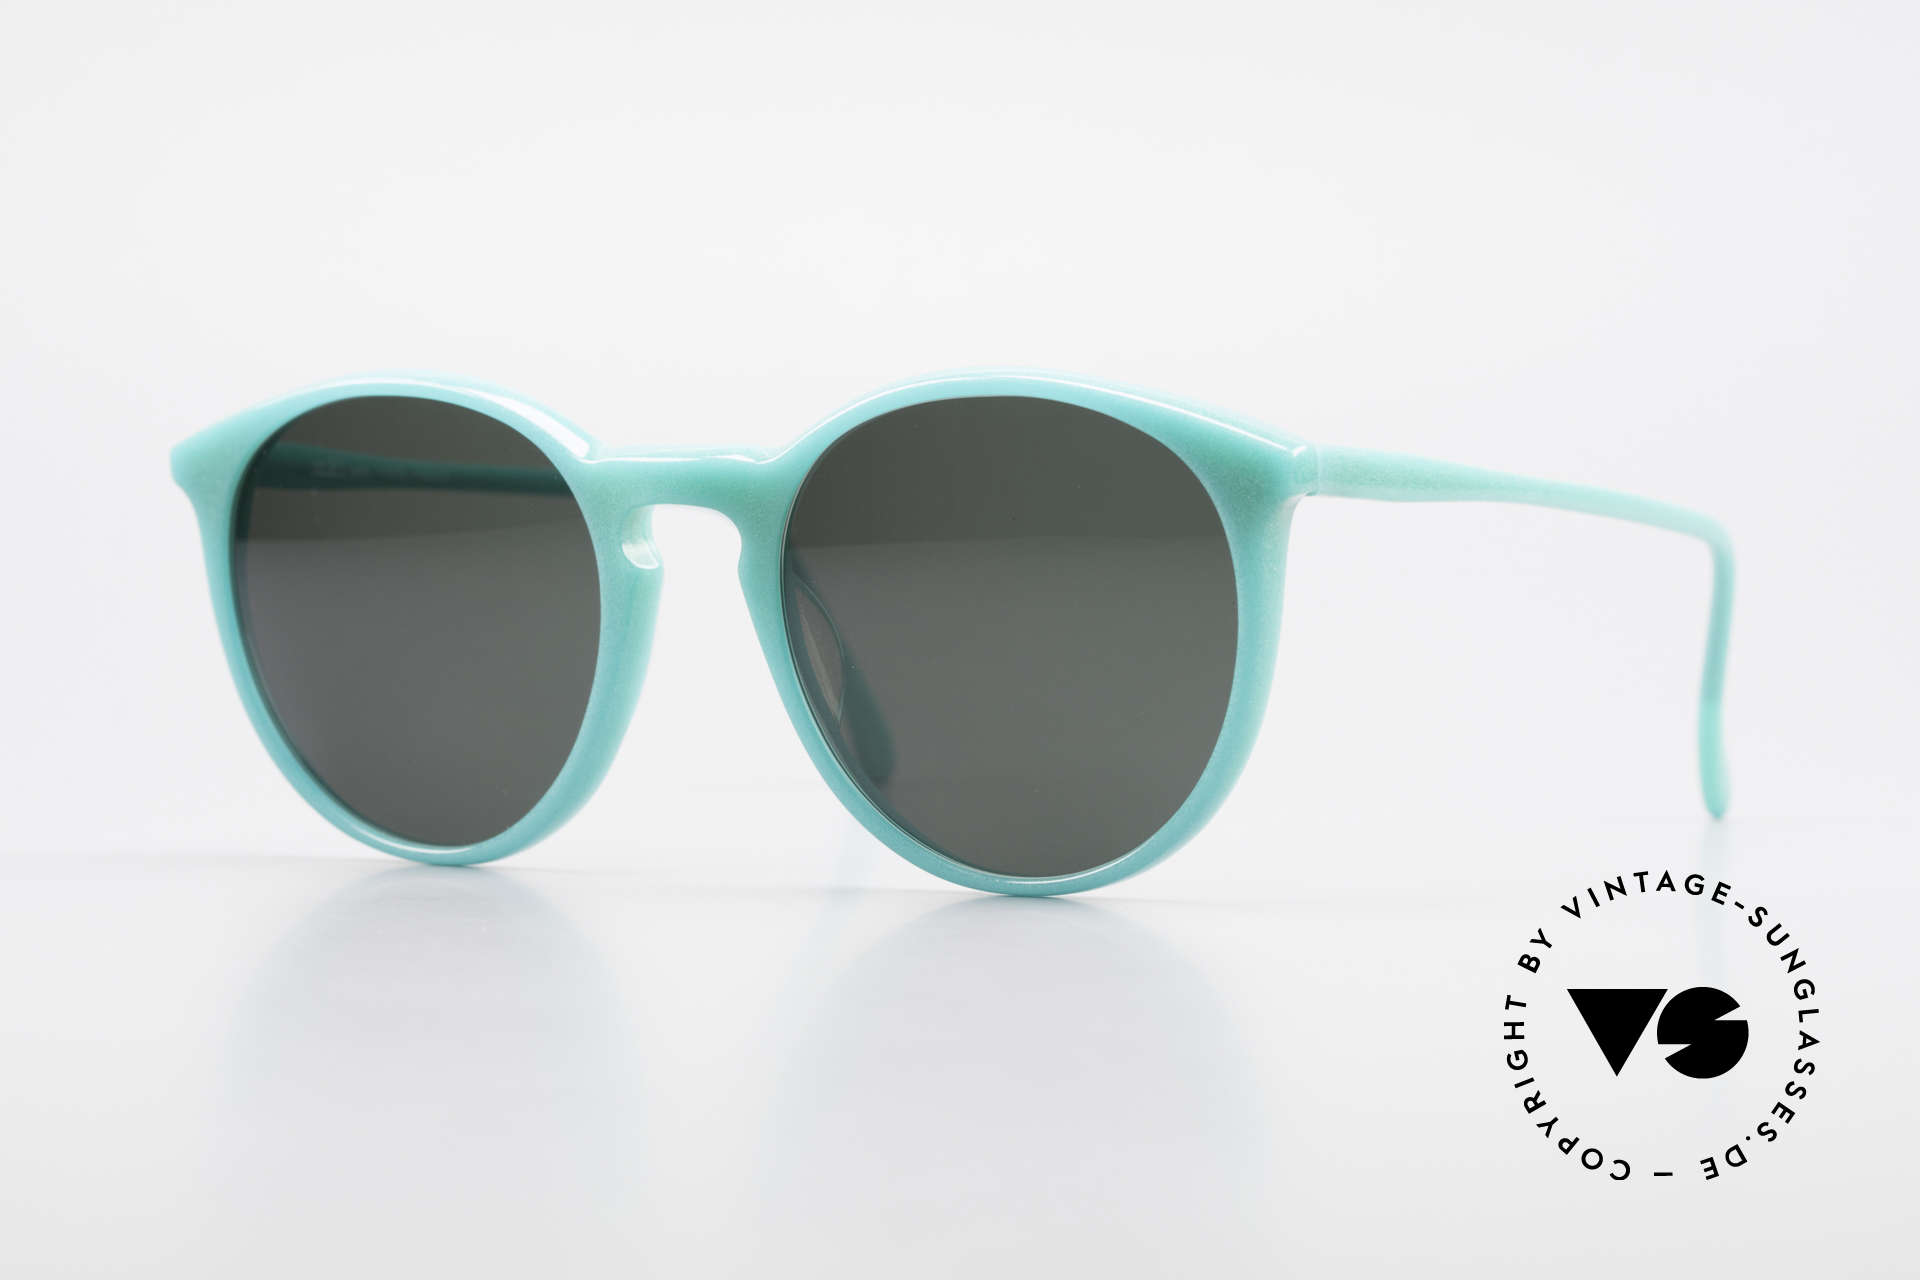 Alain Mikli 901 / 079 Green Pearl Panto Sunglasses, elegant VINTAGE Alain Mikli designer sunglasses, Made for Men and Women